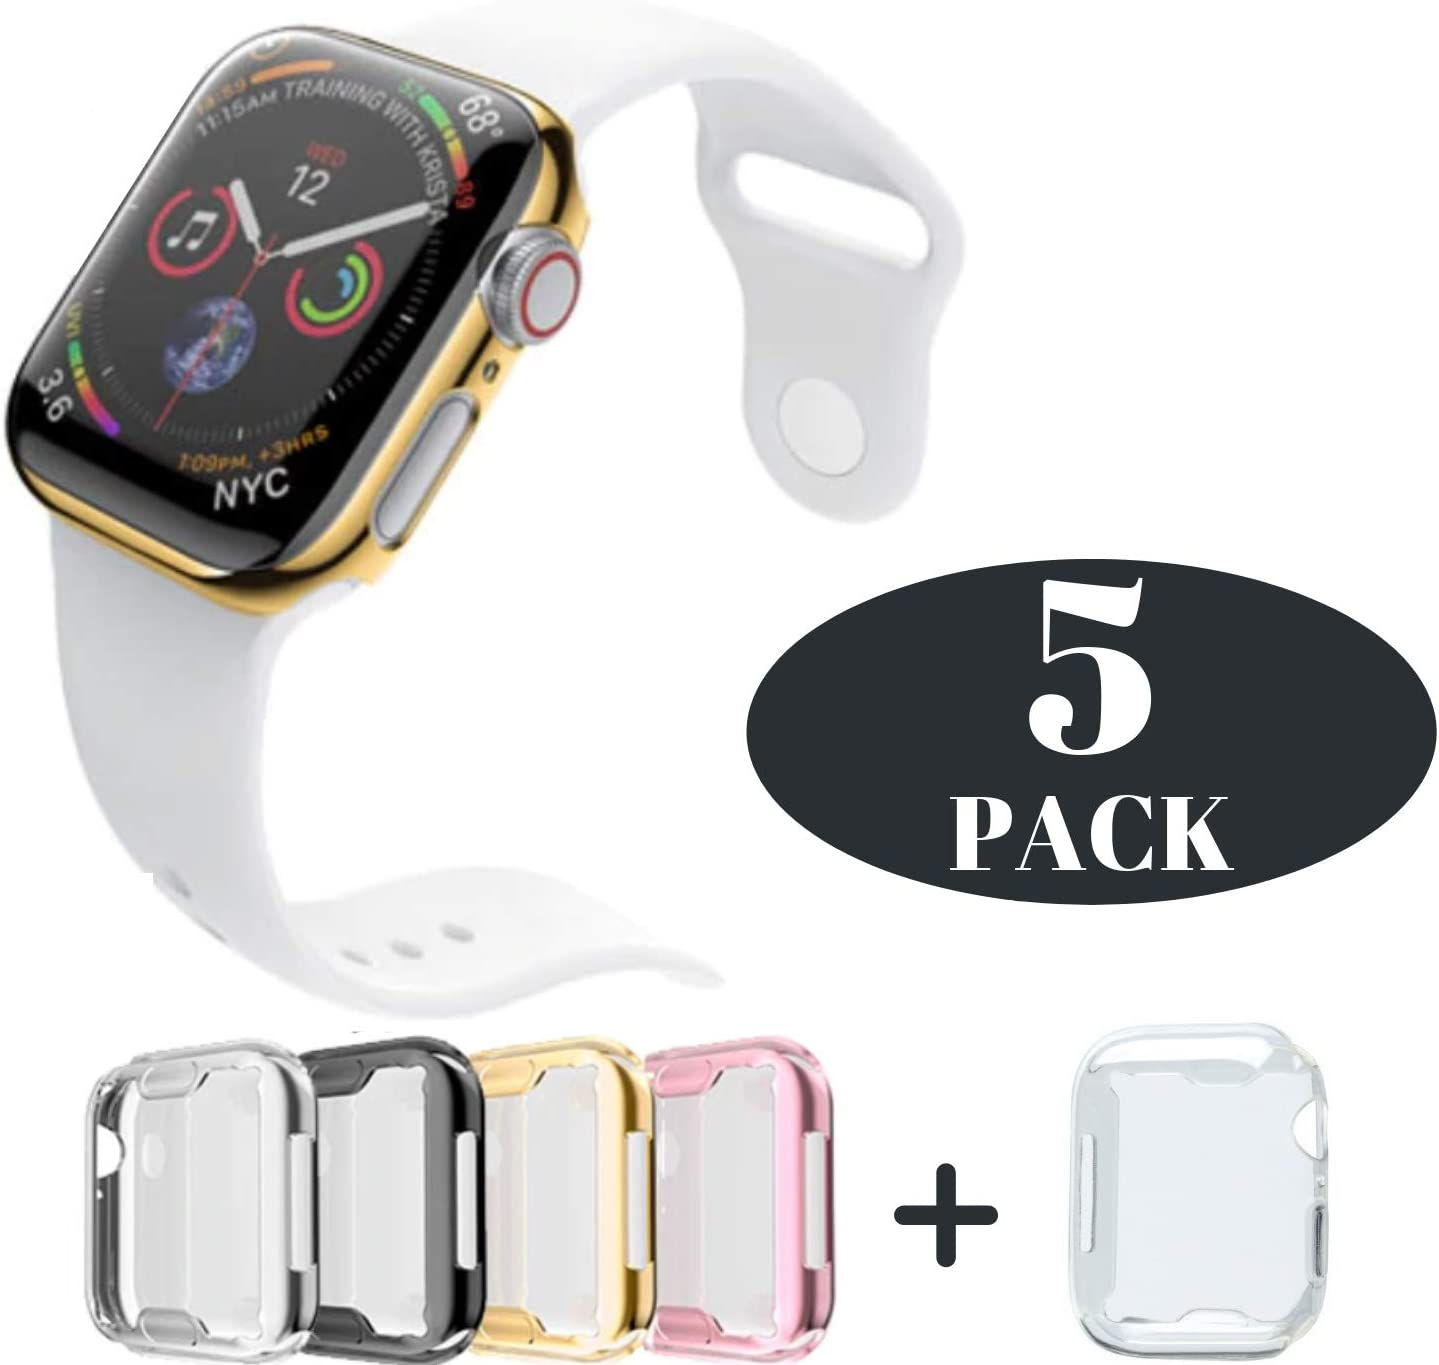 Case for Apple Watch 42mm Series 3 & 2 with Built-in HD Clear Screen Protector All Around Protective Covers [4 PACK] Bundle in Black Silver, Gold, & Rose Gold Ultra-thin 42mm iWatch 3 / 2/ 1 Premium TPU Cover by iV Industry